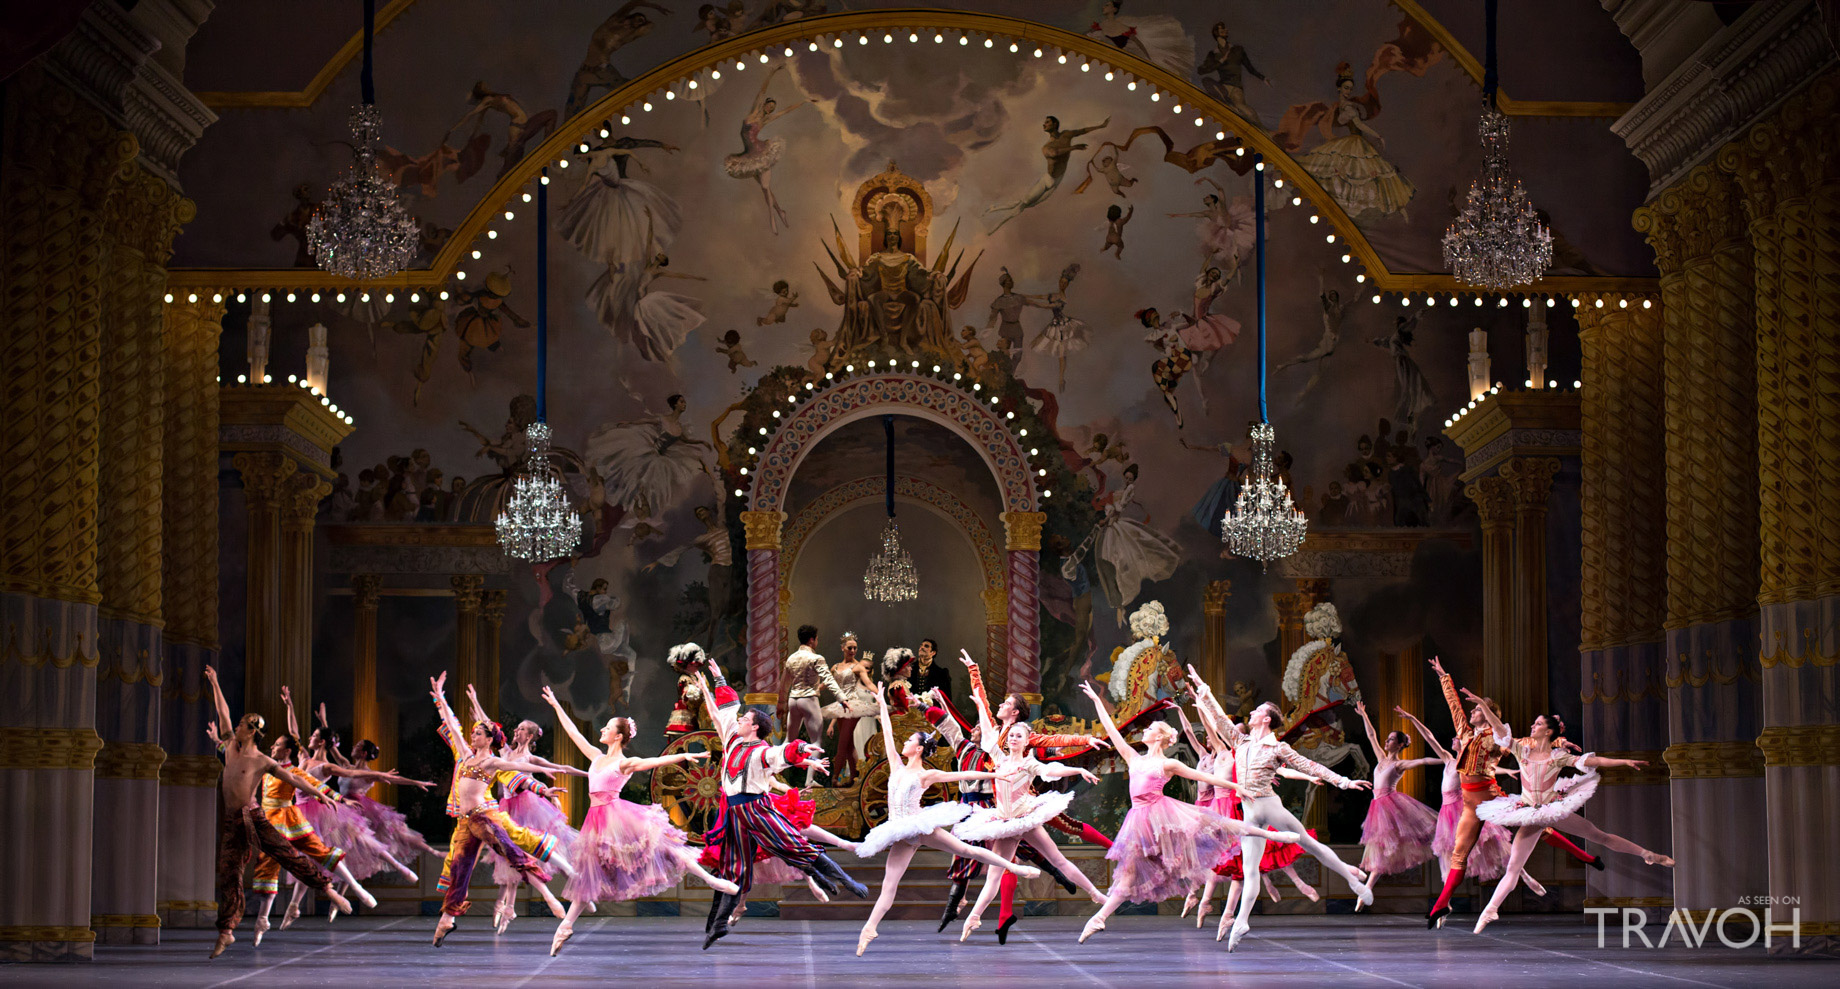 See a Performance of The Nutcracker - Boston Opera House 539 Washington St, Boston, MA, USA